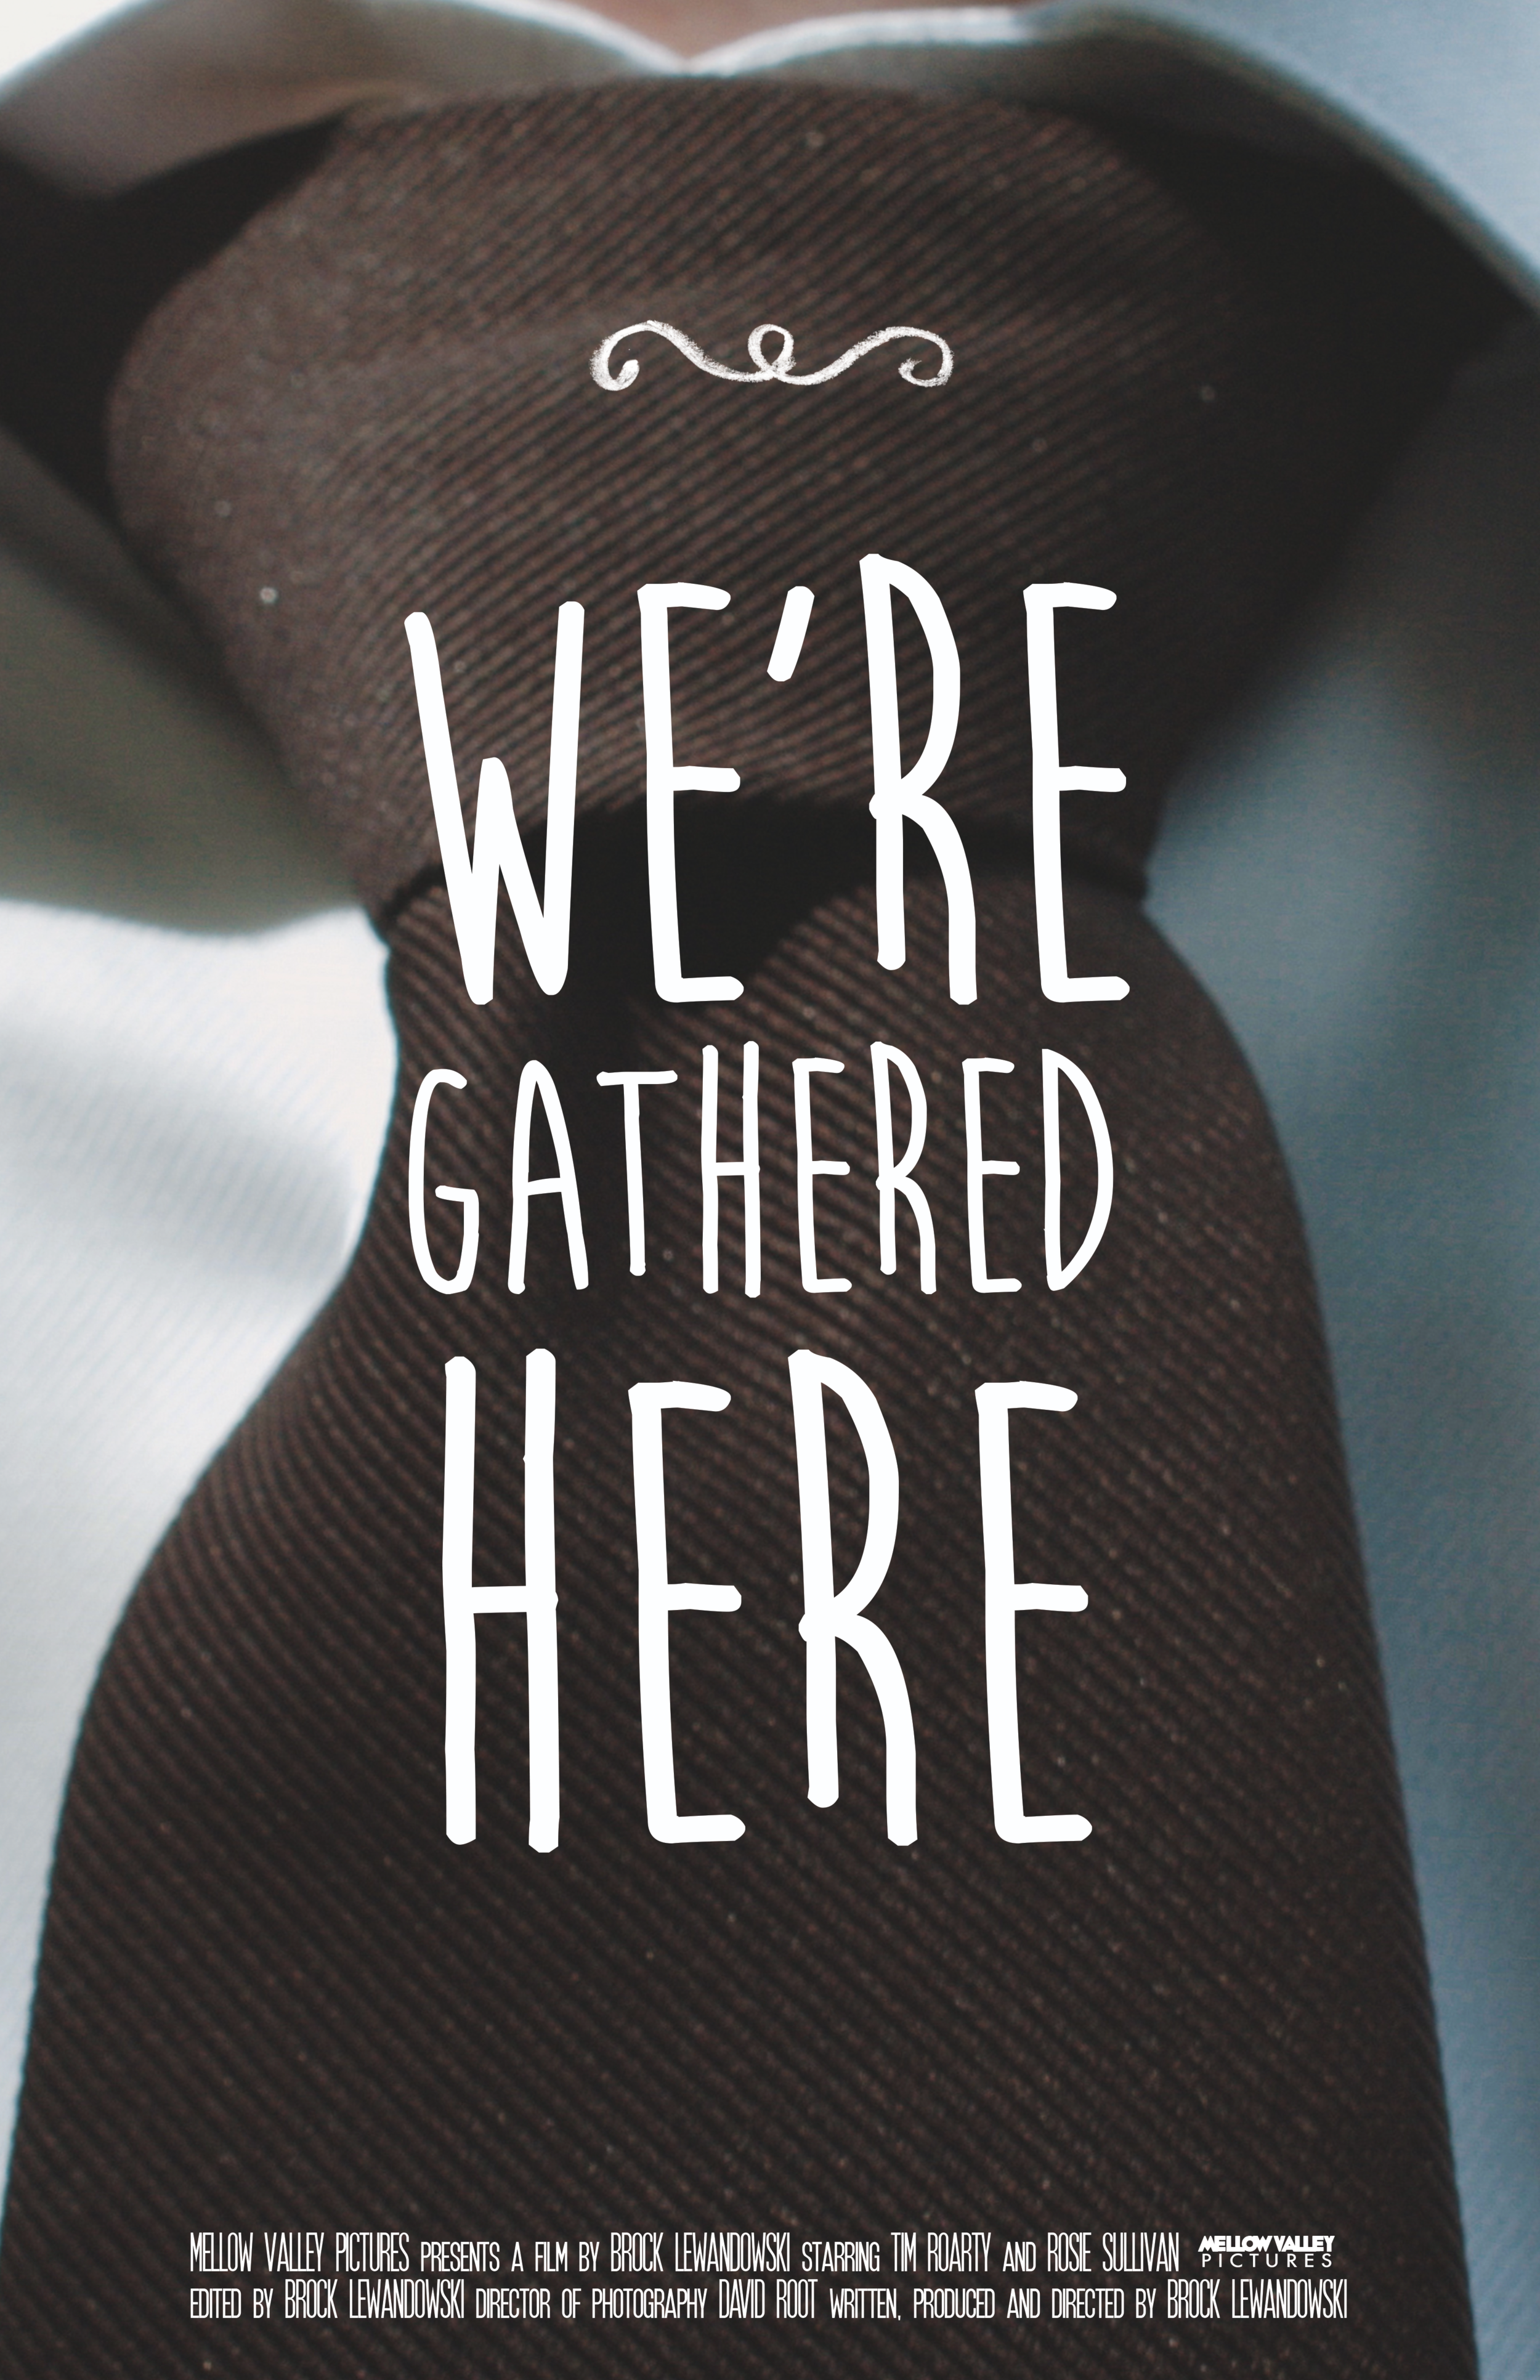 Gathered Poster2.png